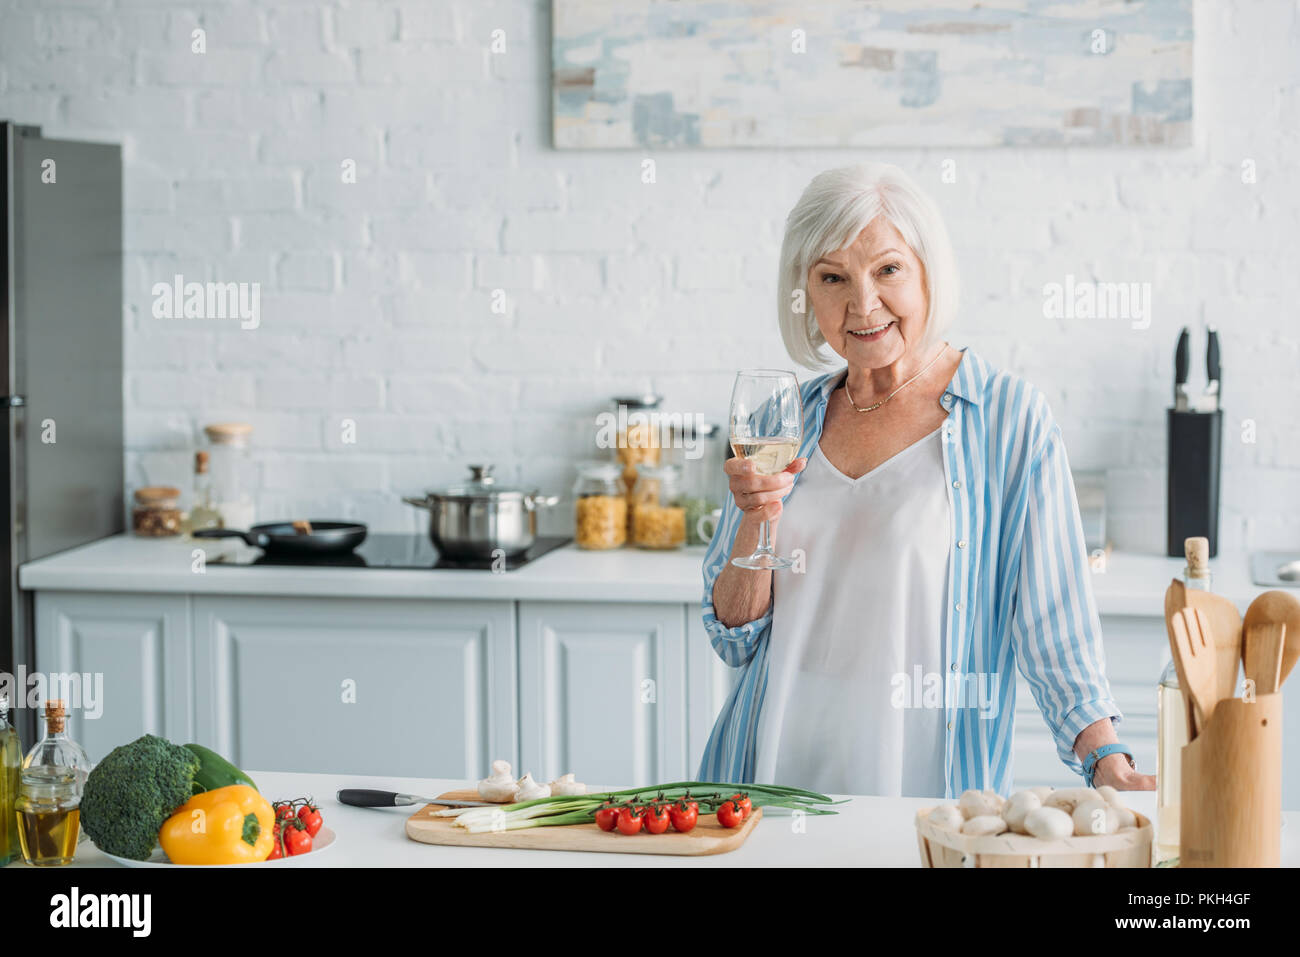 Very Old Lady Wine Stock Photos & Very Old Lady Wine Stock Images ...